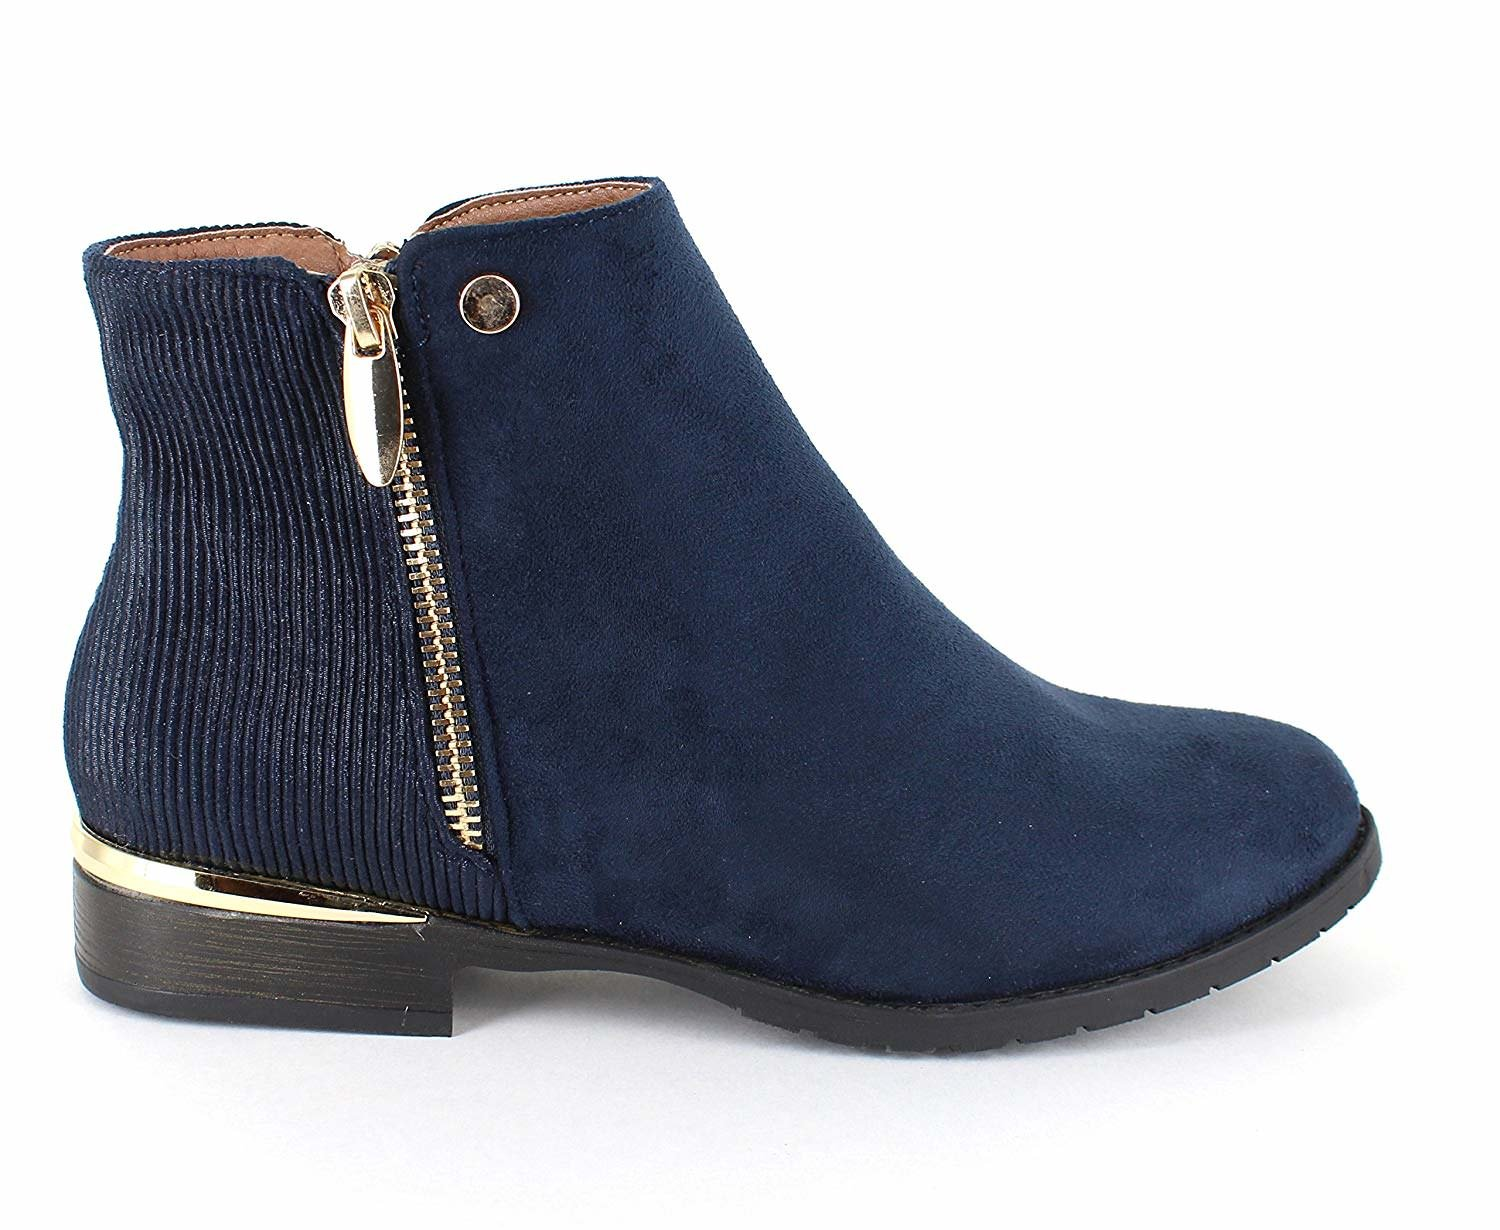 only Gold U Casual Faux Suede Gold only Trim Ankle Boots B07F9NTW6Q 5.5 B(M) US|Navy df8c4d